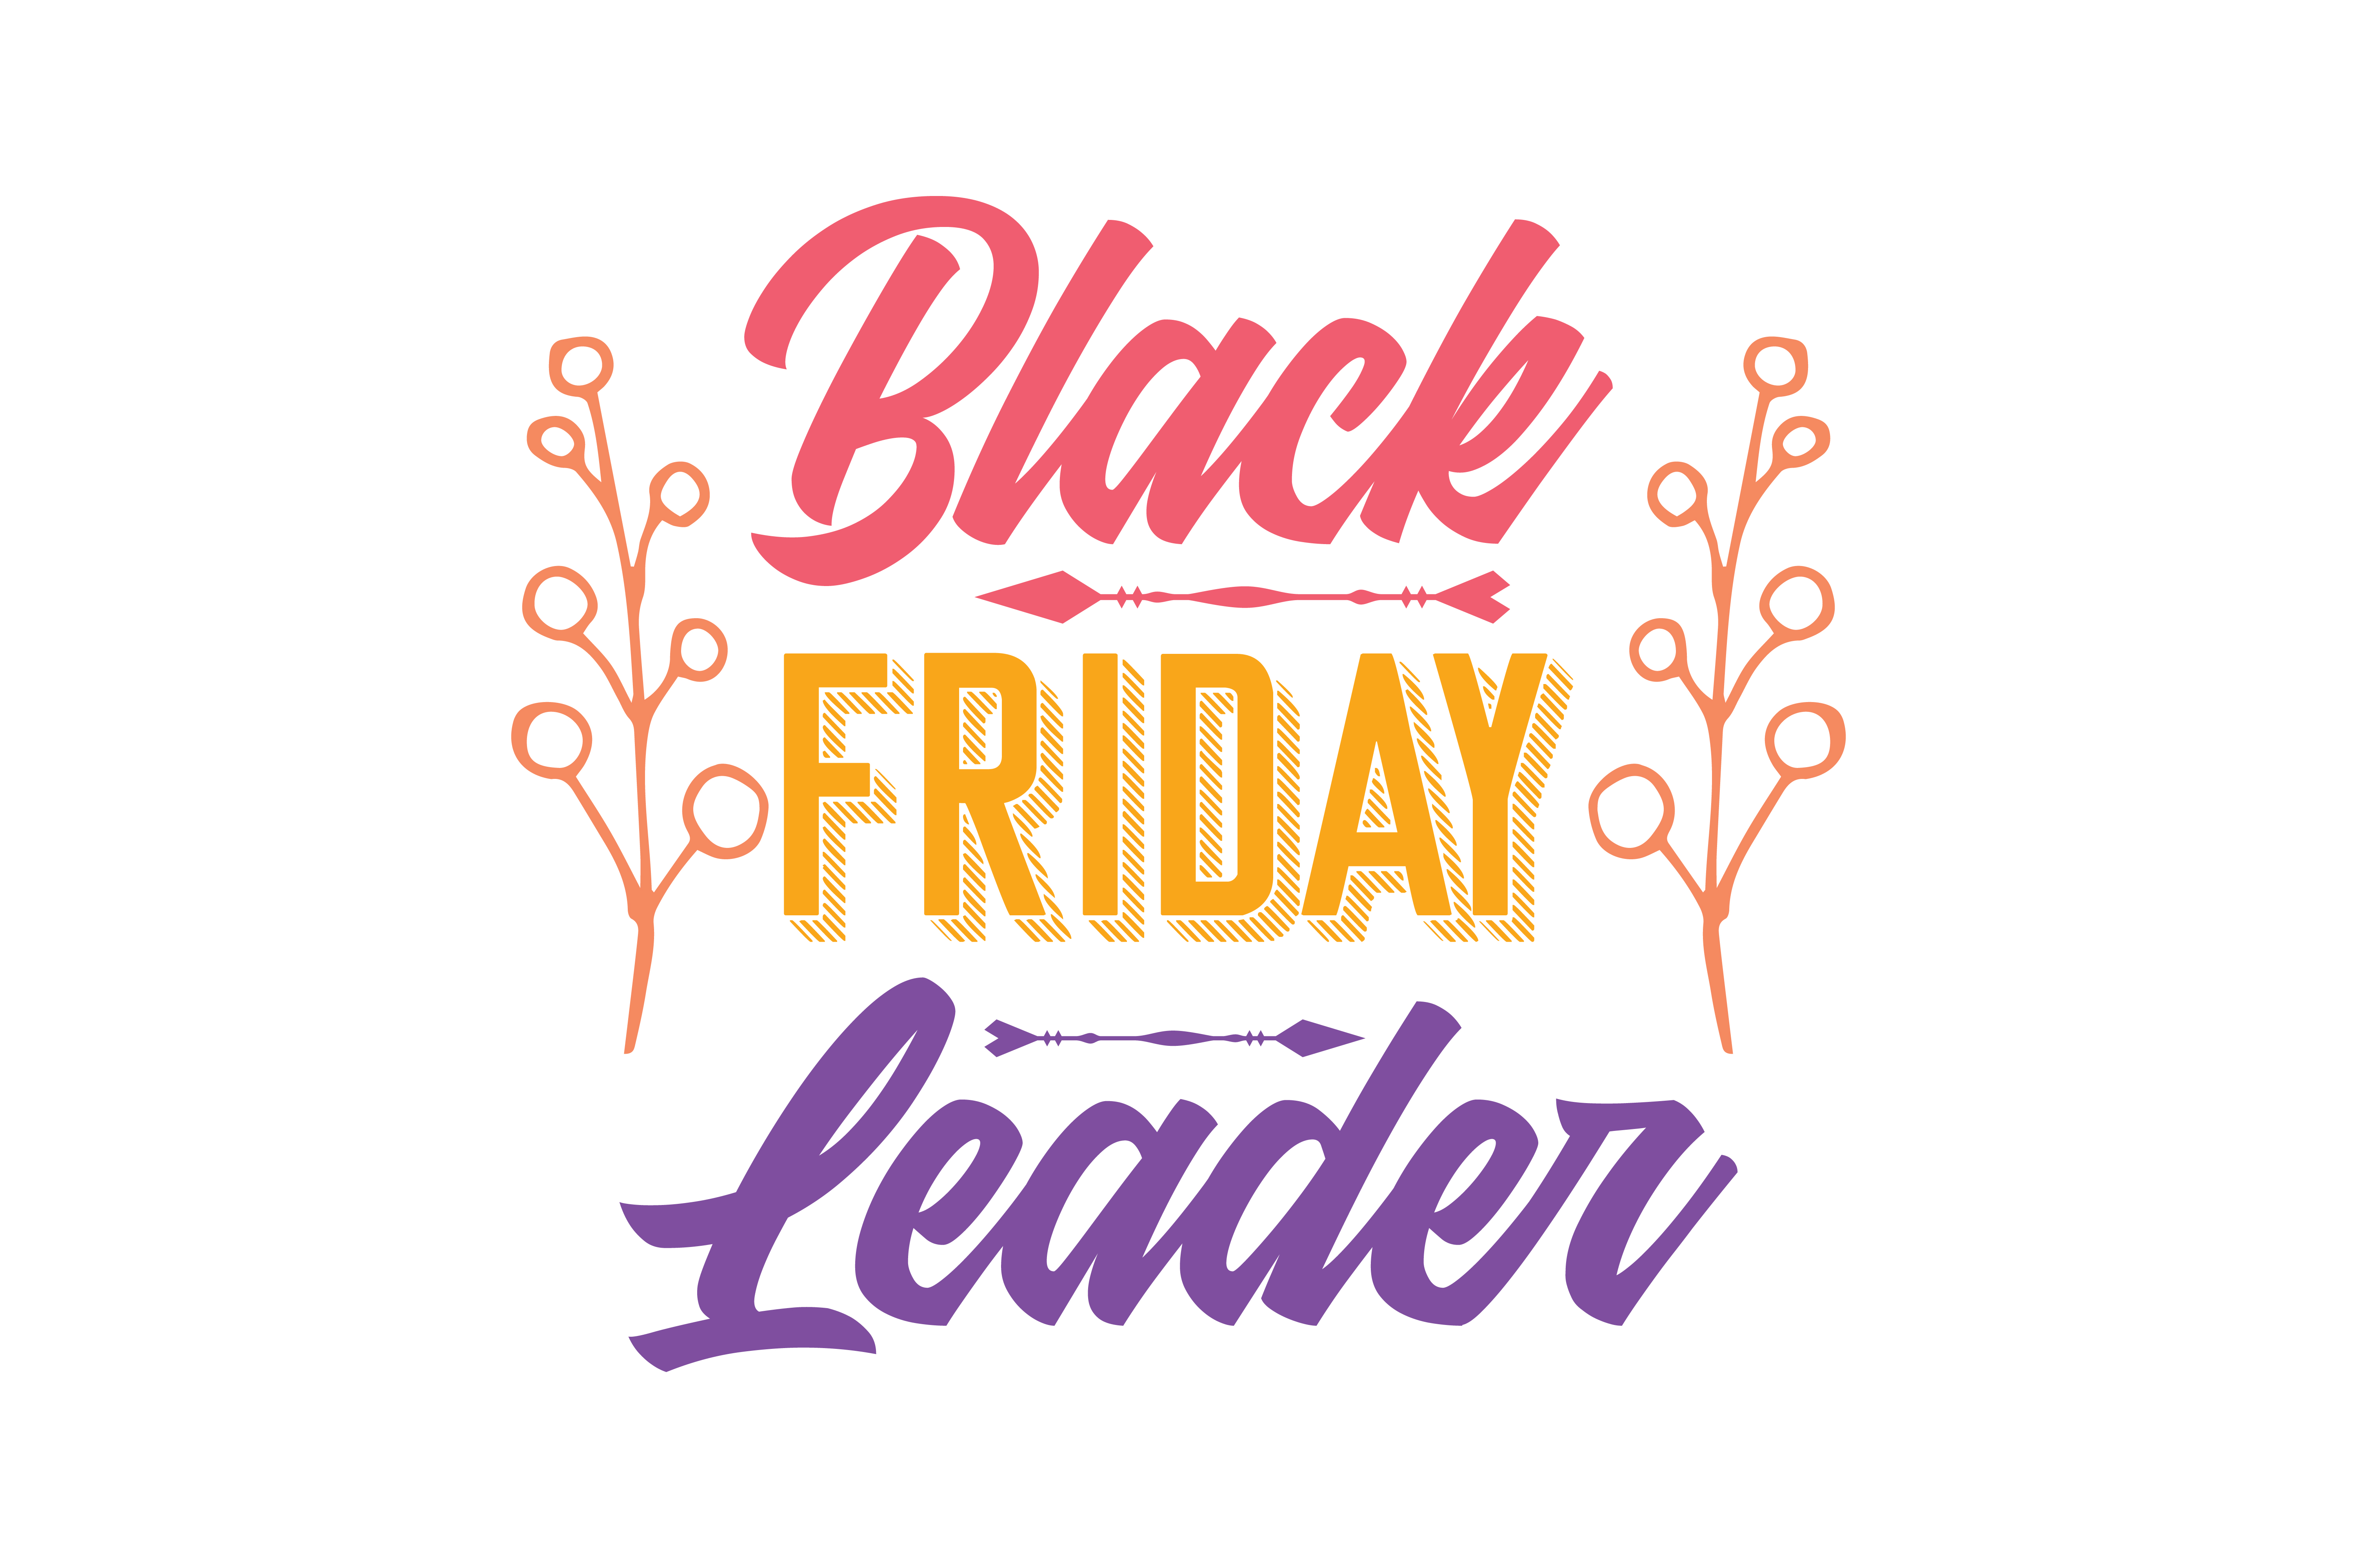 Download Free Black Friday Leader Quote Svg Cut Graphic By Thelucky Creative for Cricut Explore, Silhouette and other cutting machines.